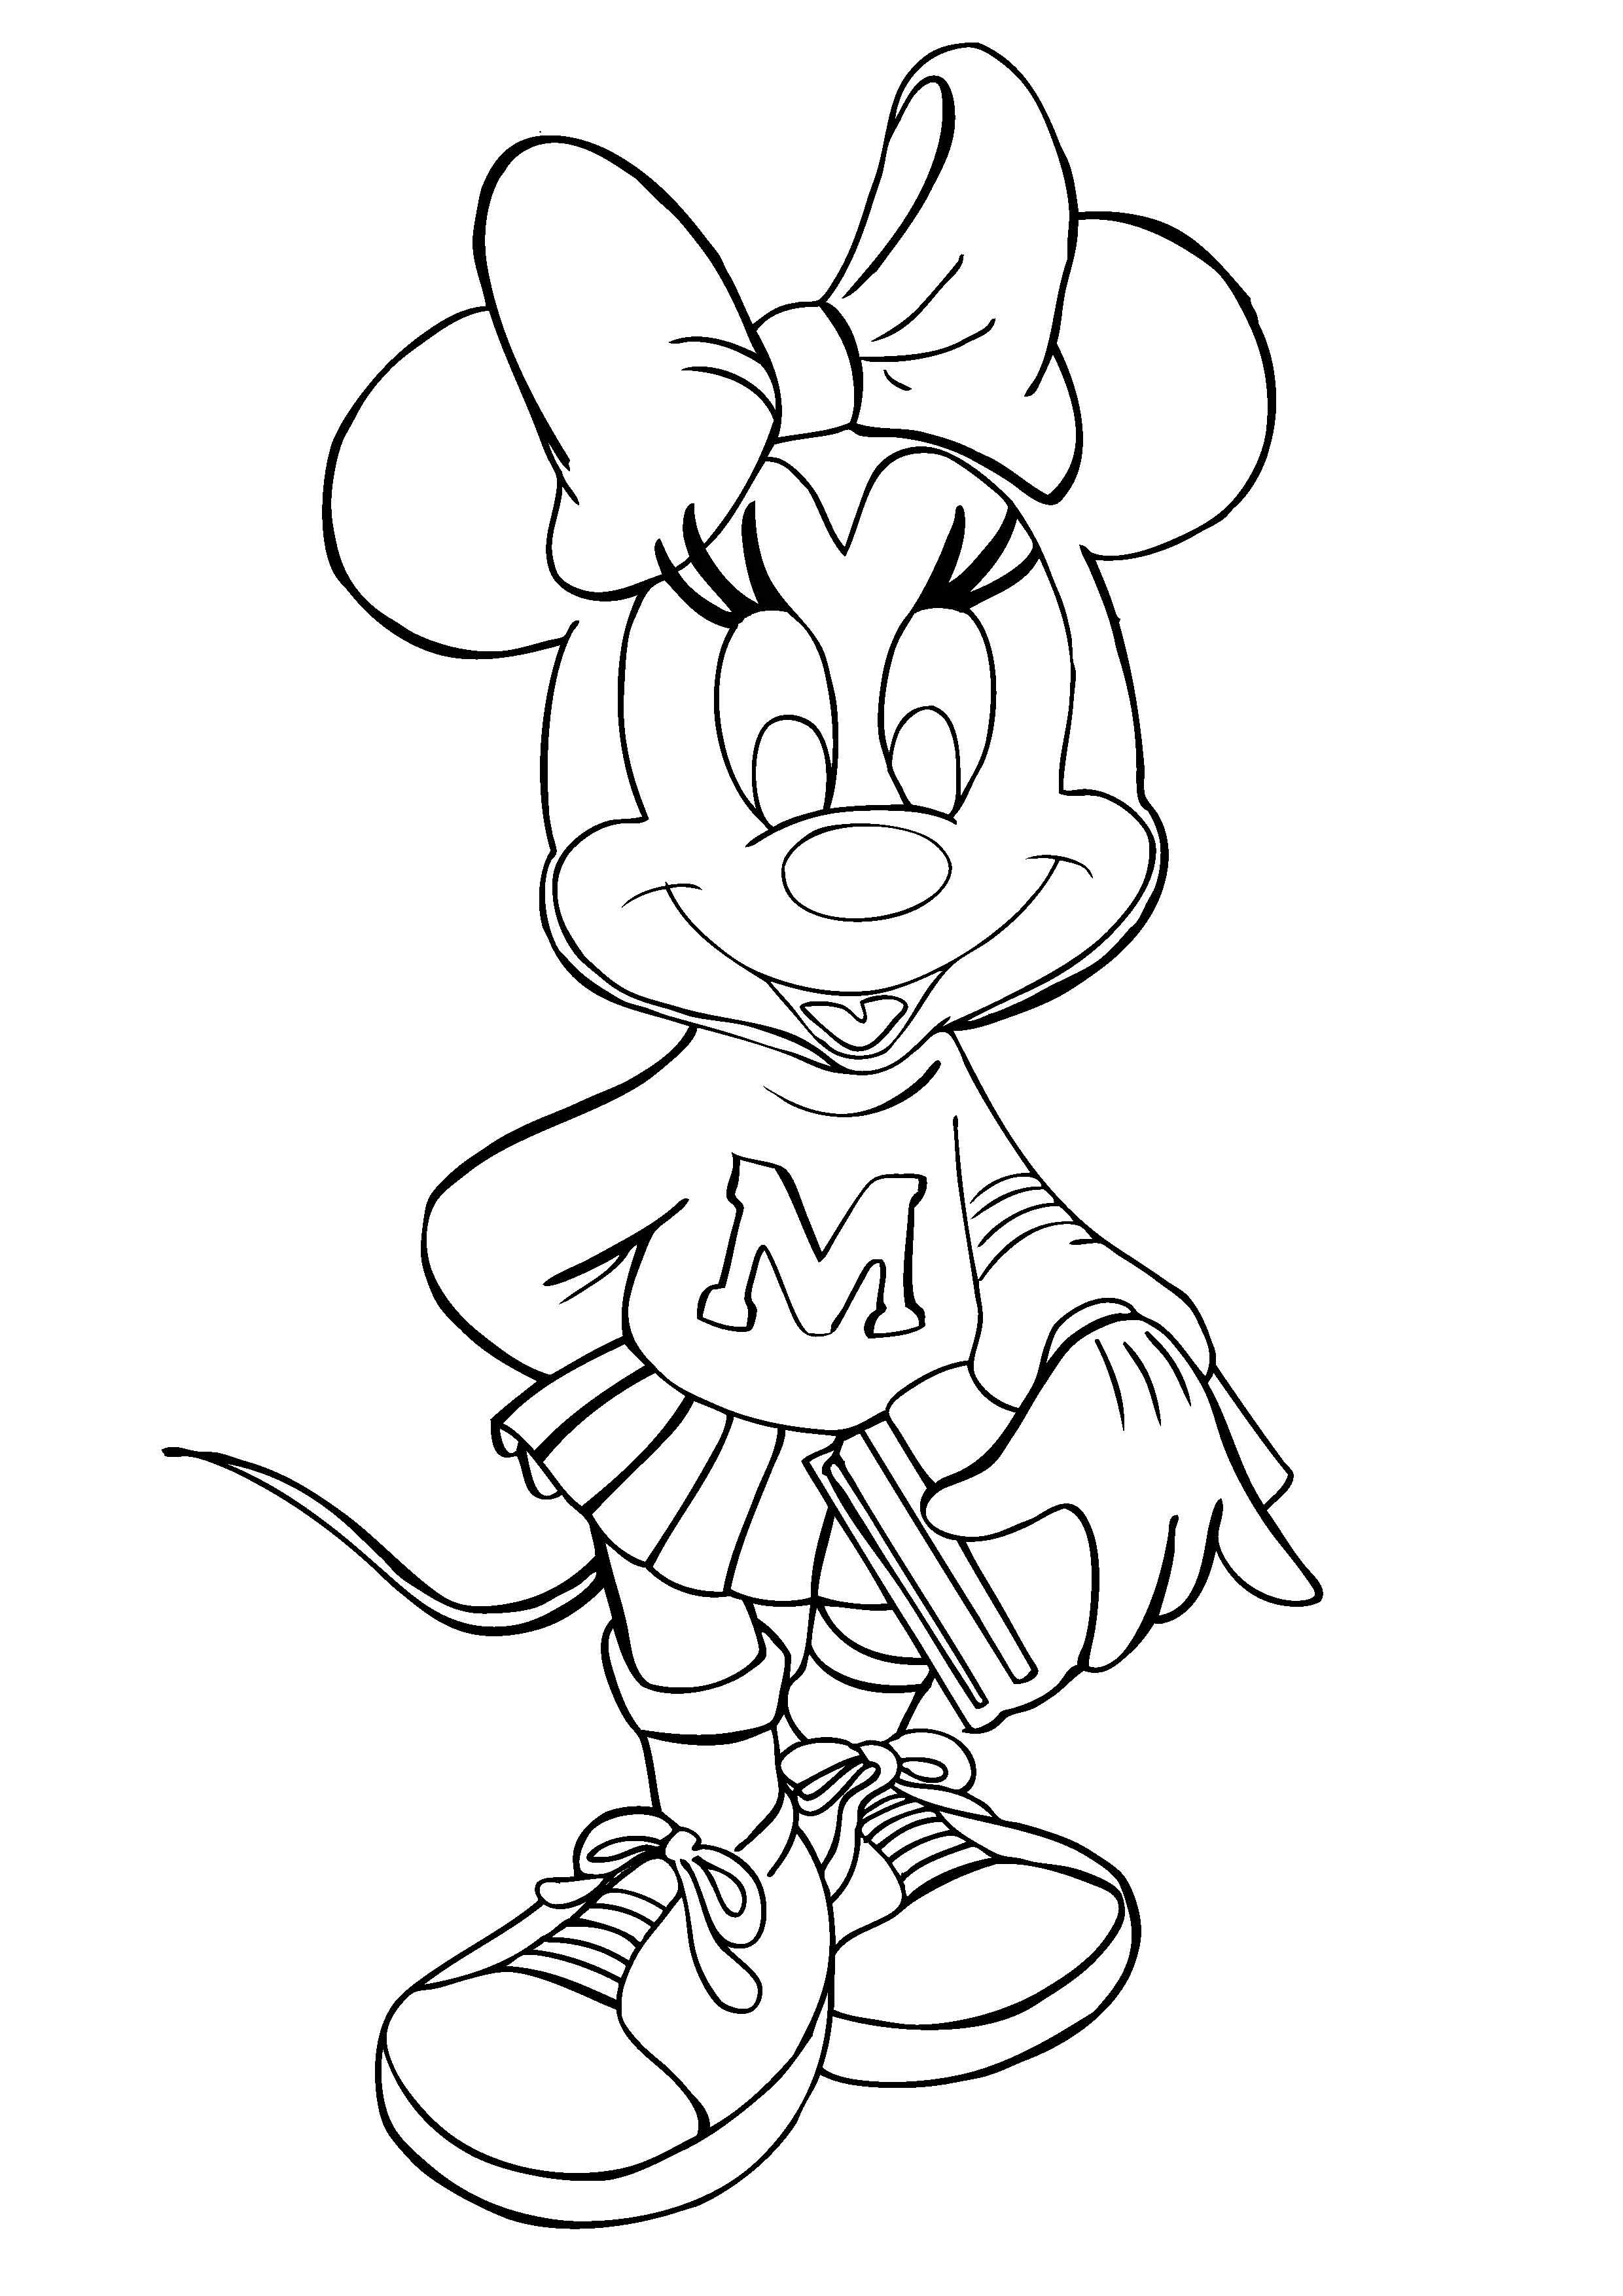 Minnie Mouse Coloring Pages Disney Coloring Pages 20 Free